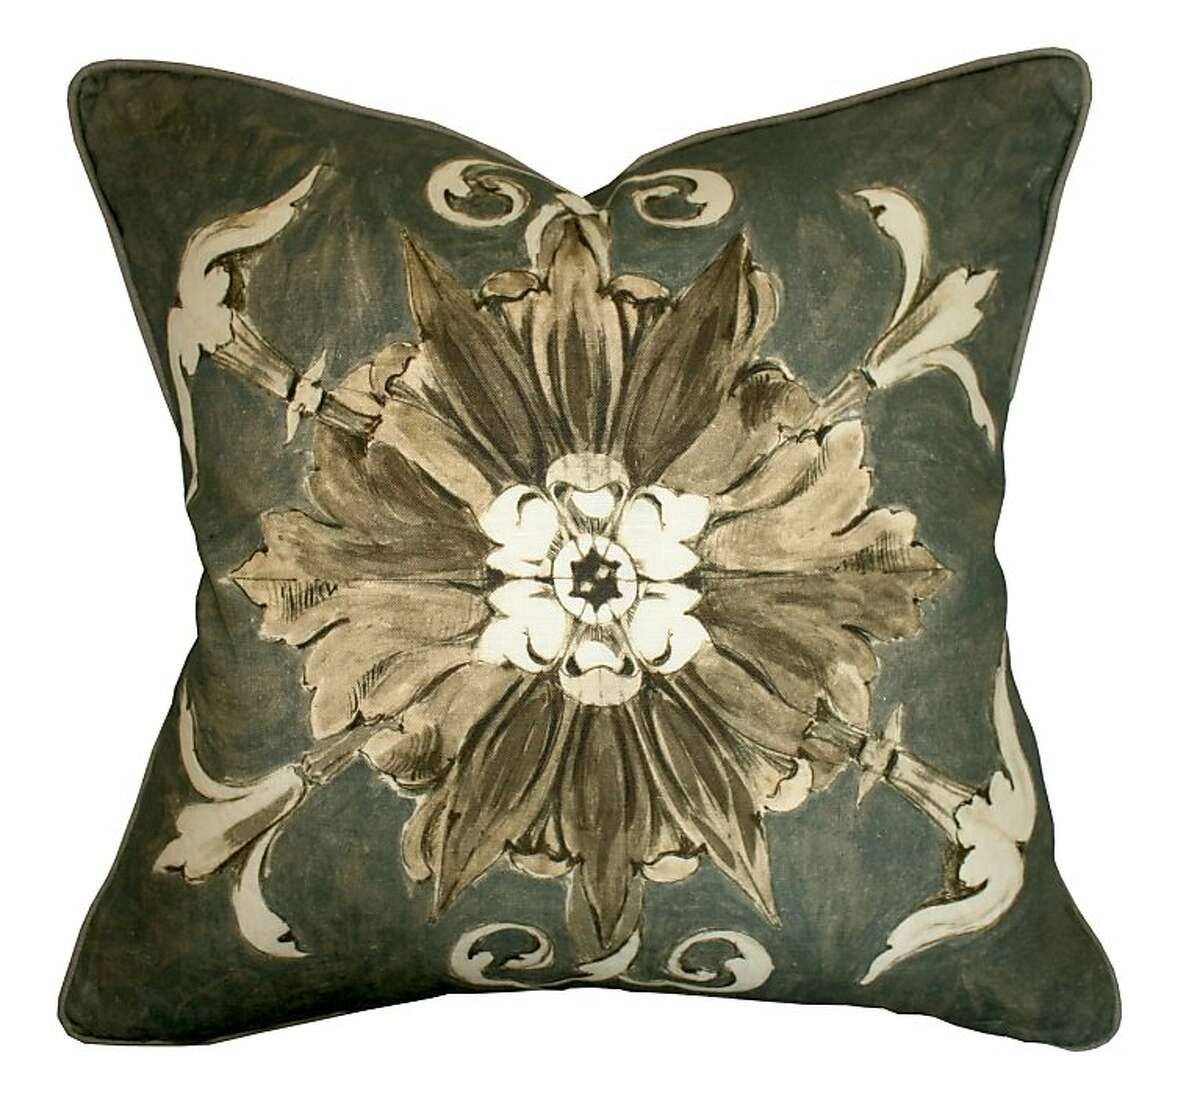 Heast Castle Collection pillows by Barclay Butera Home